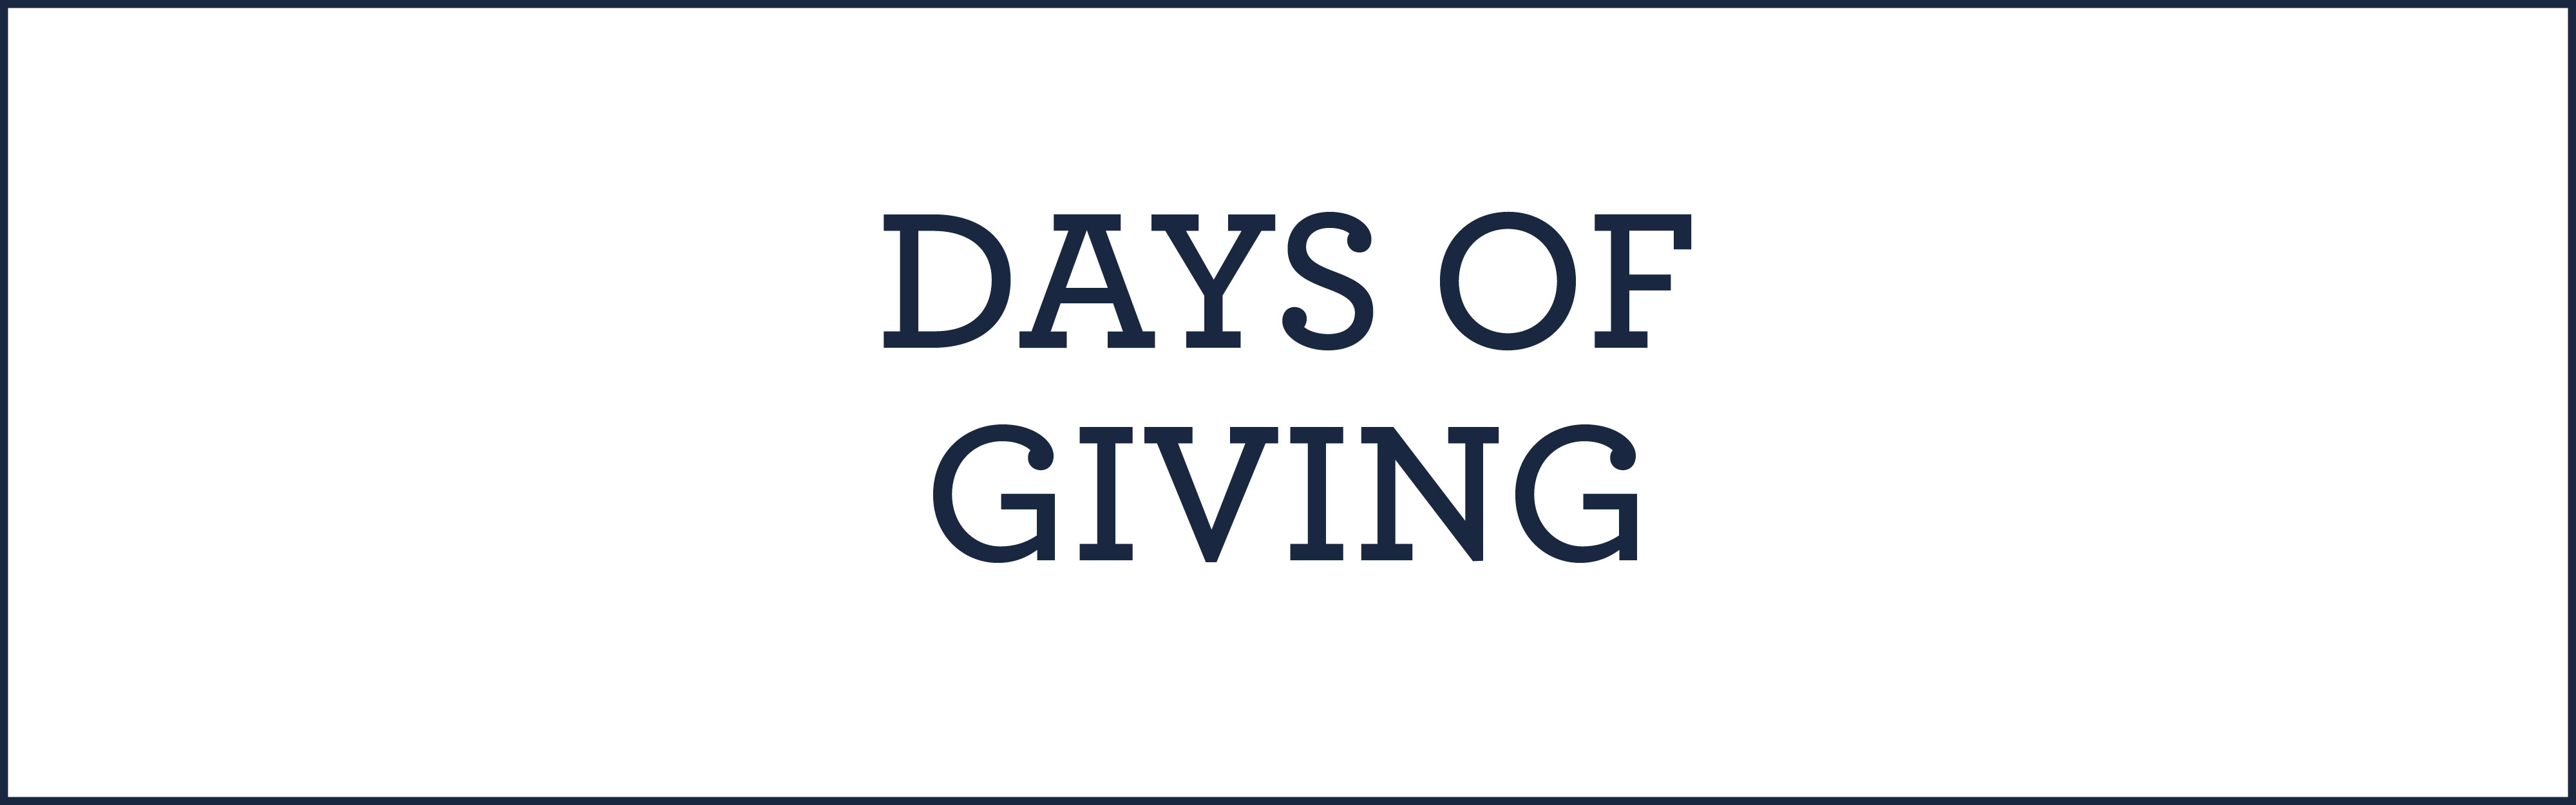 days of giving event information